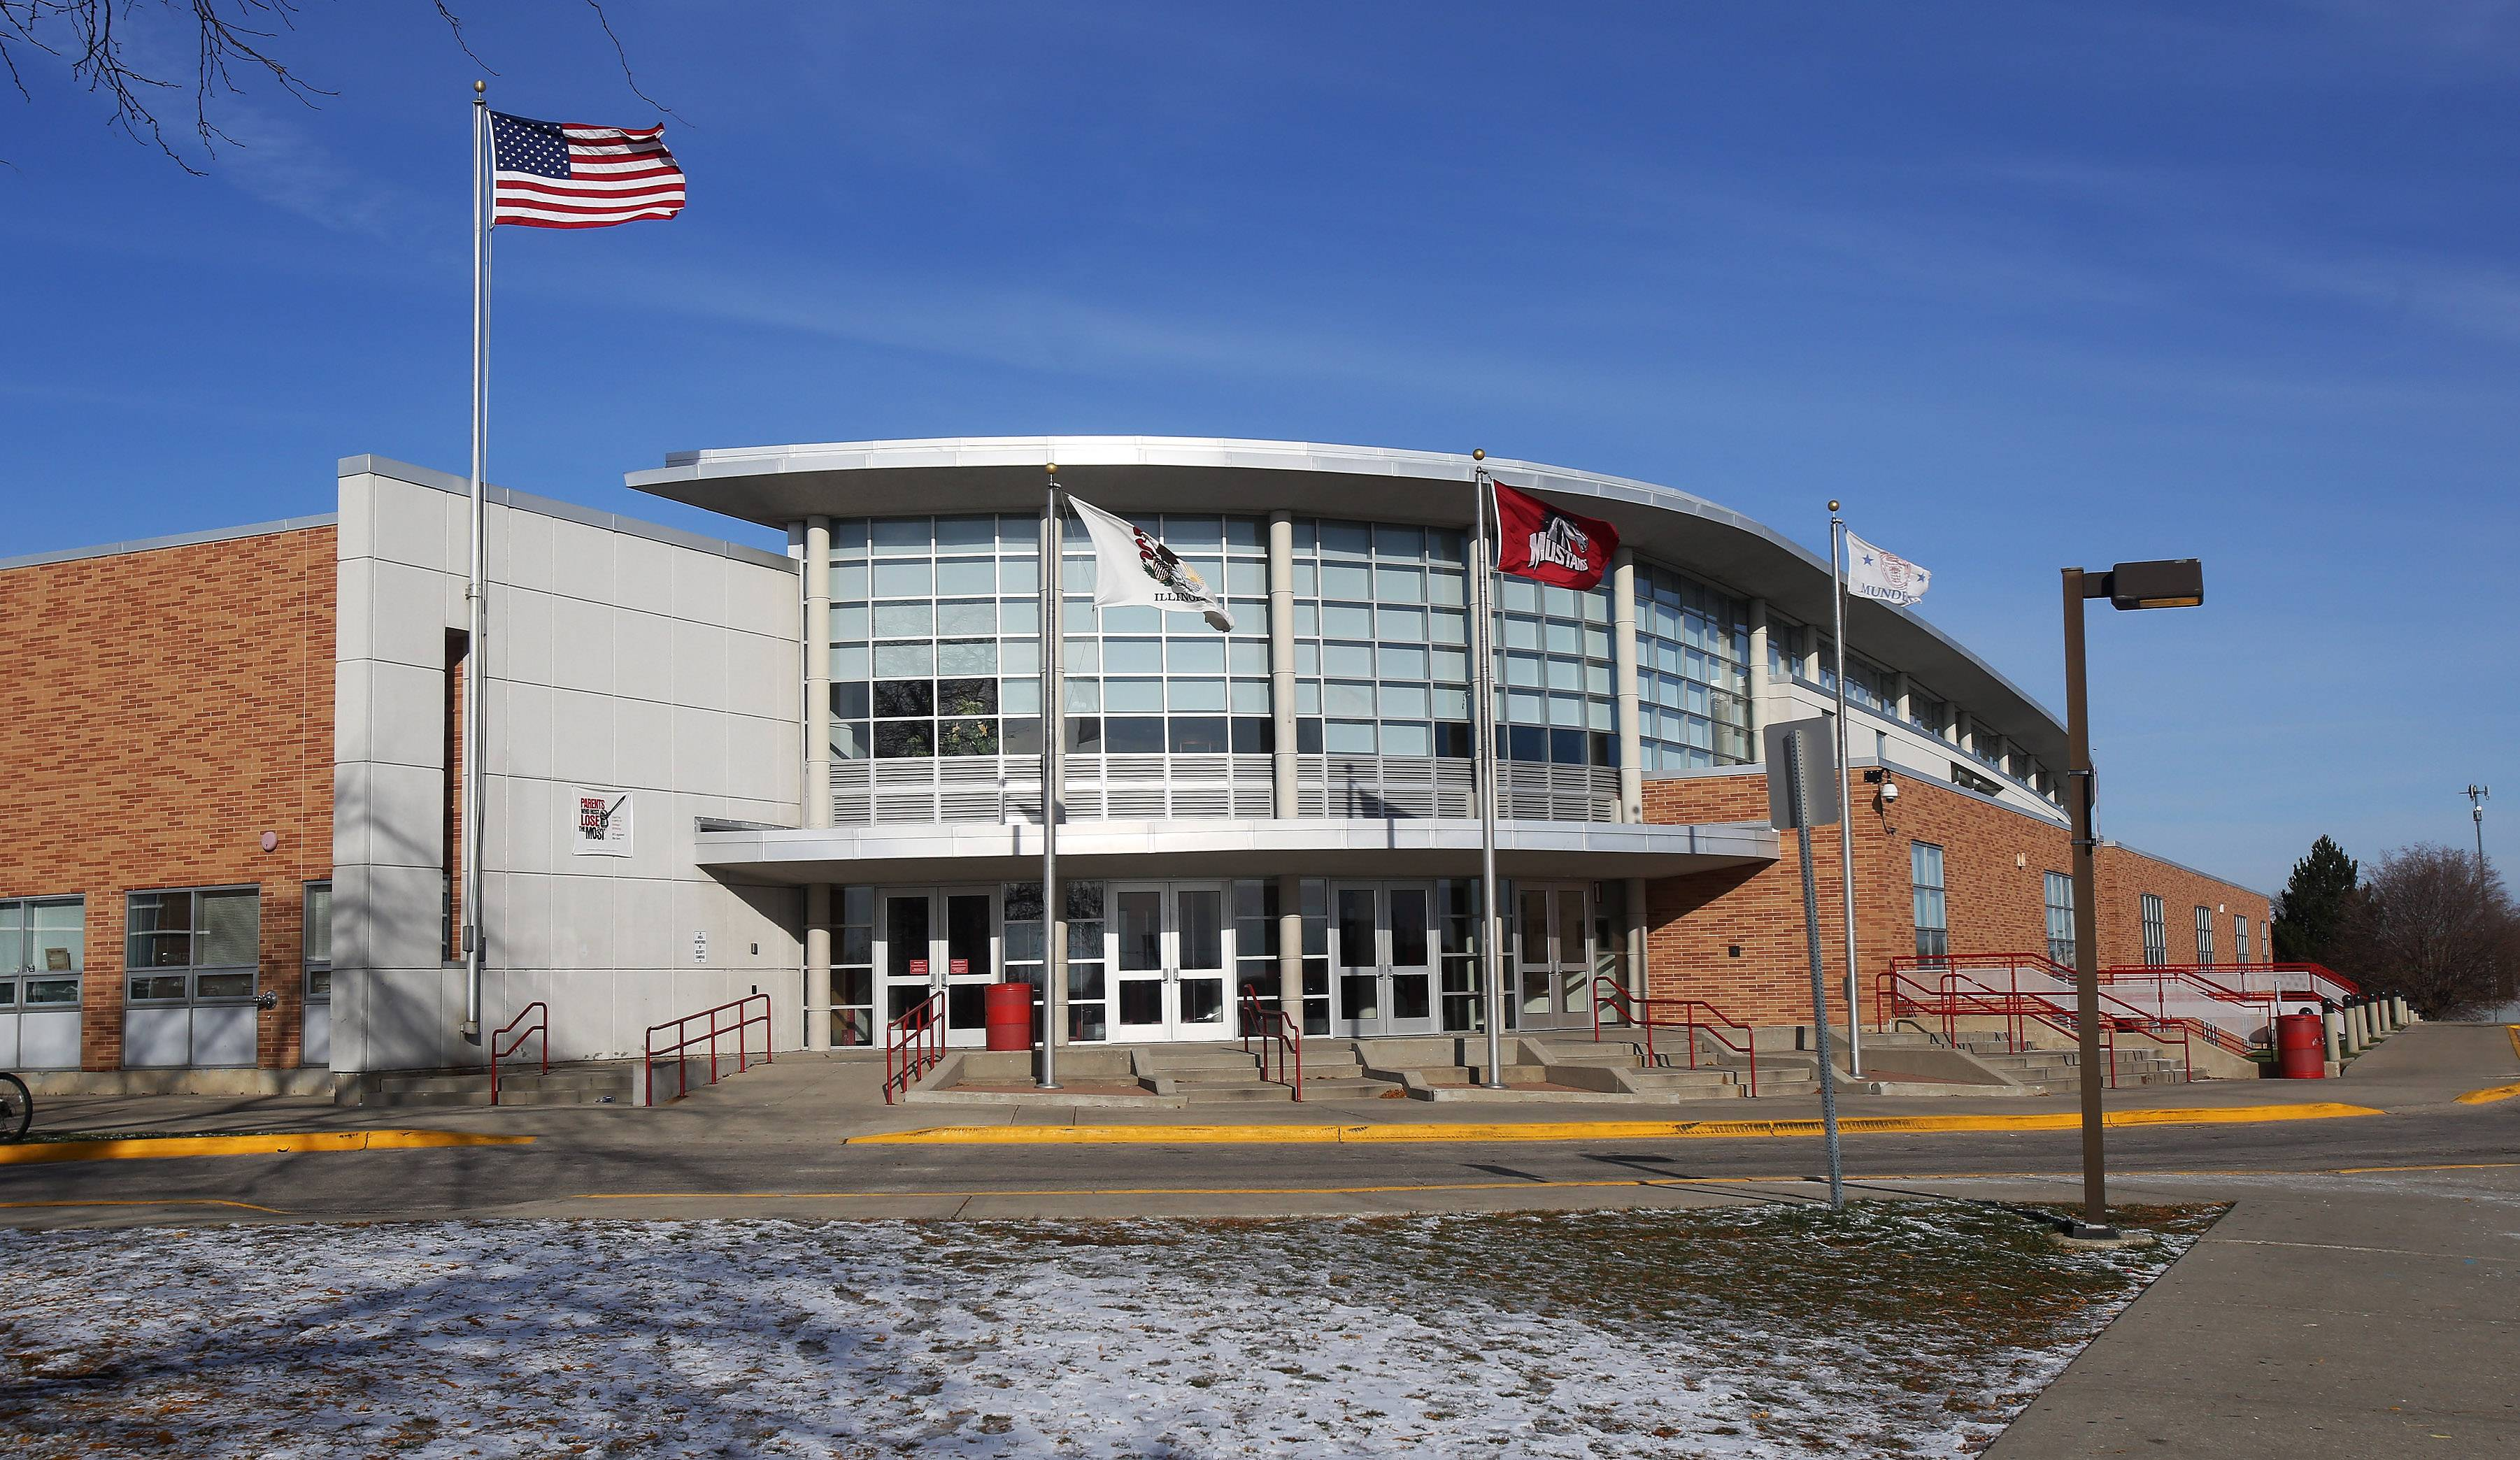 Pay raises approved for some Mundelein High employees